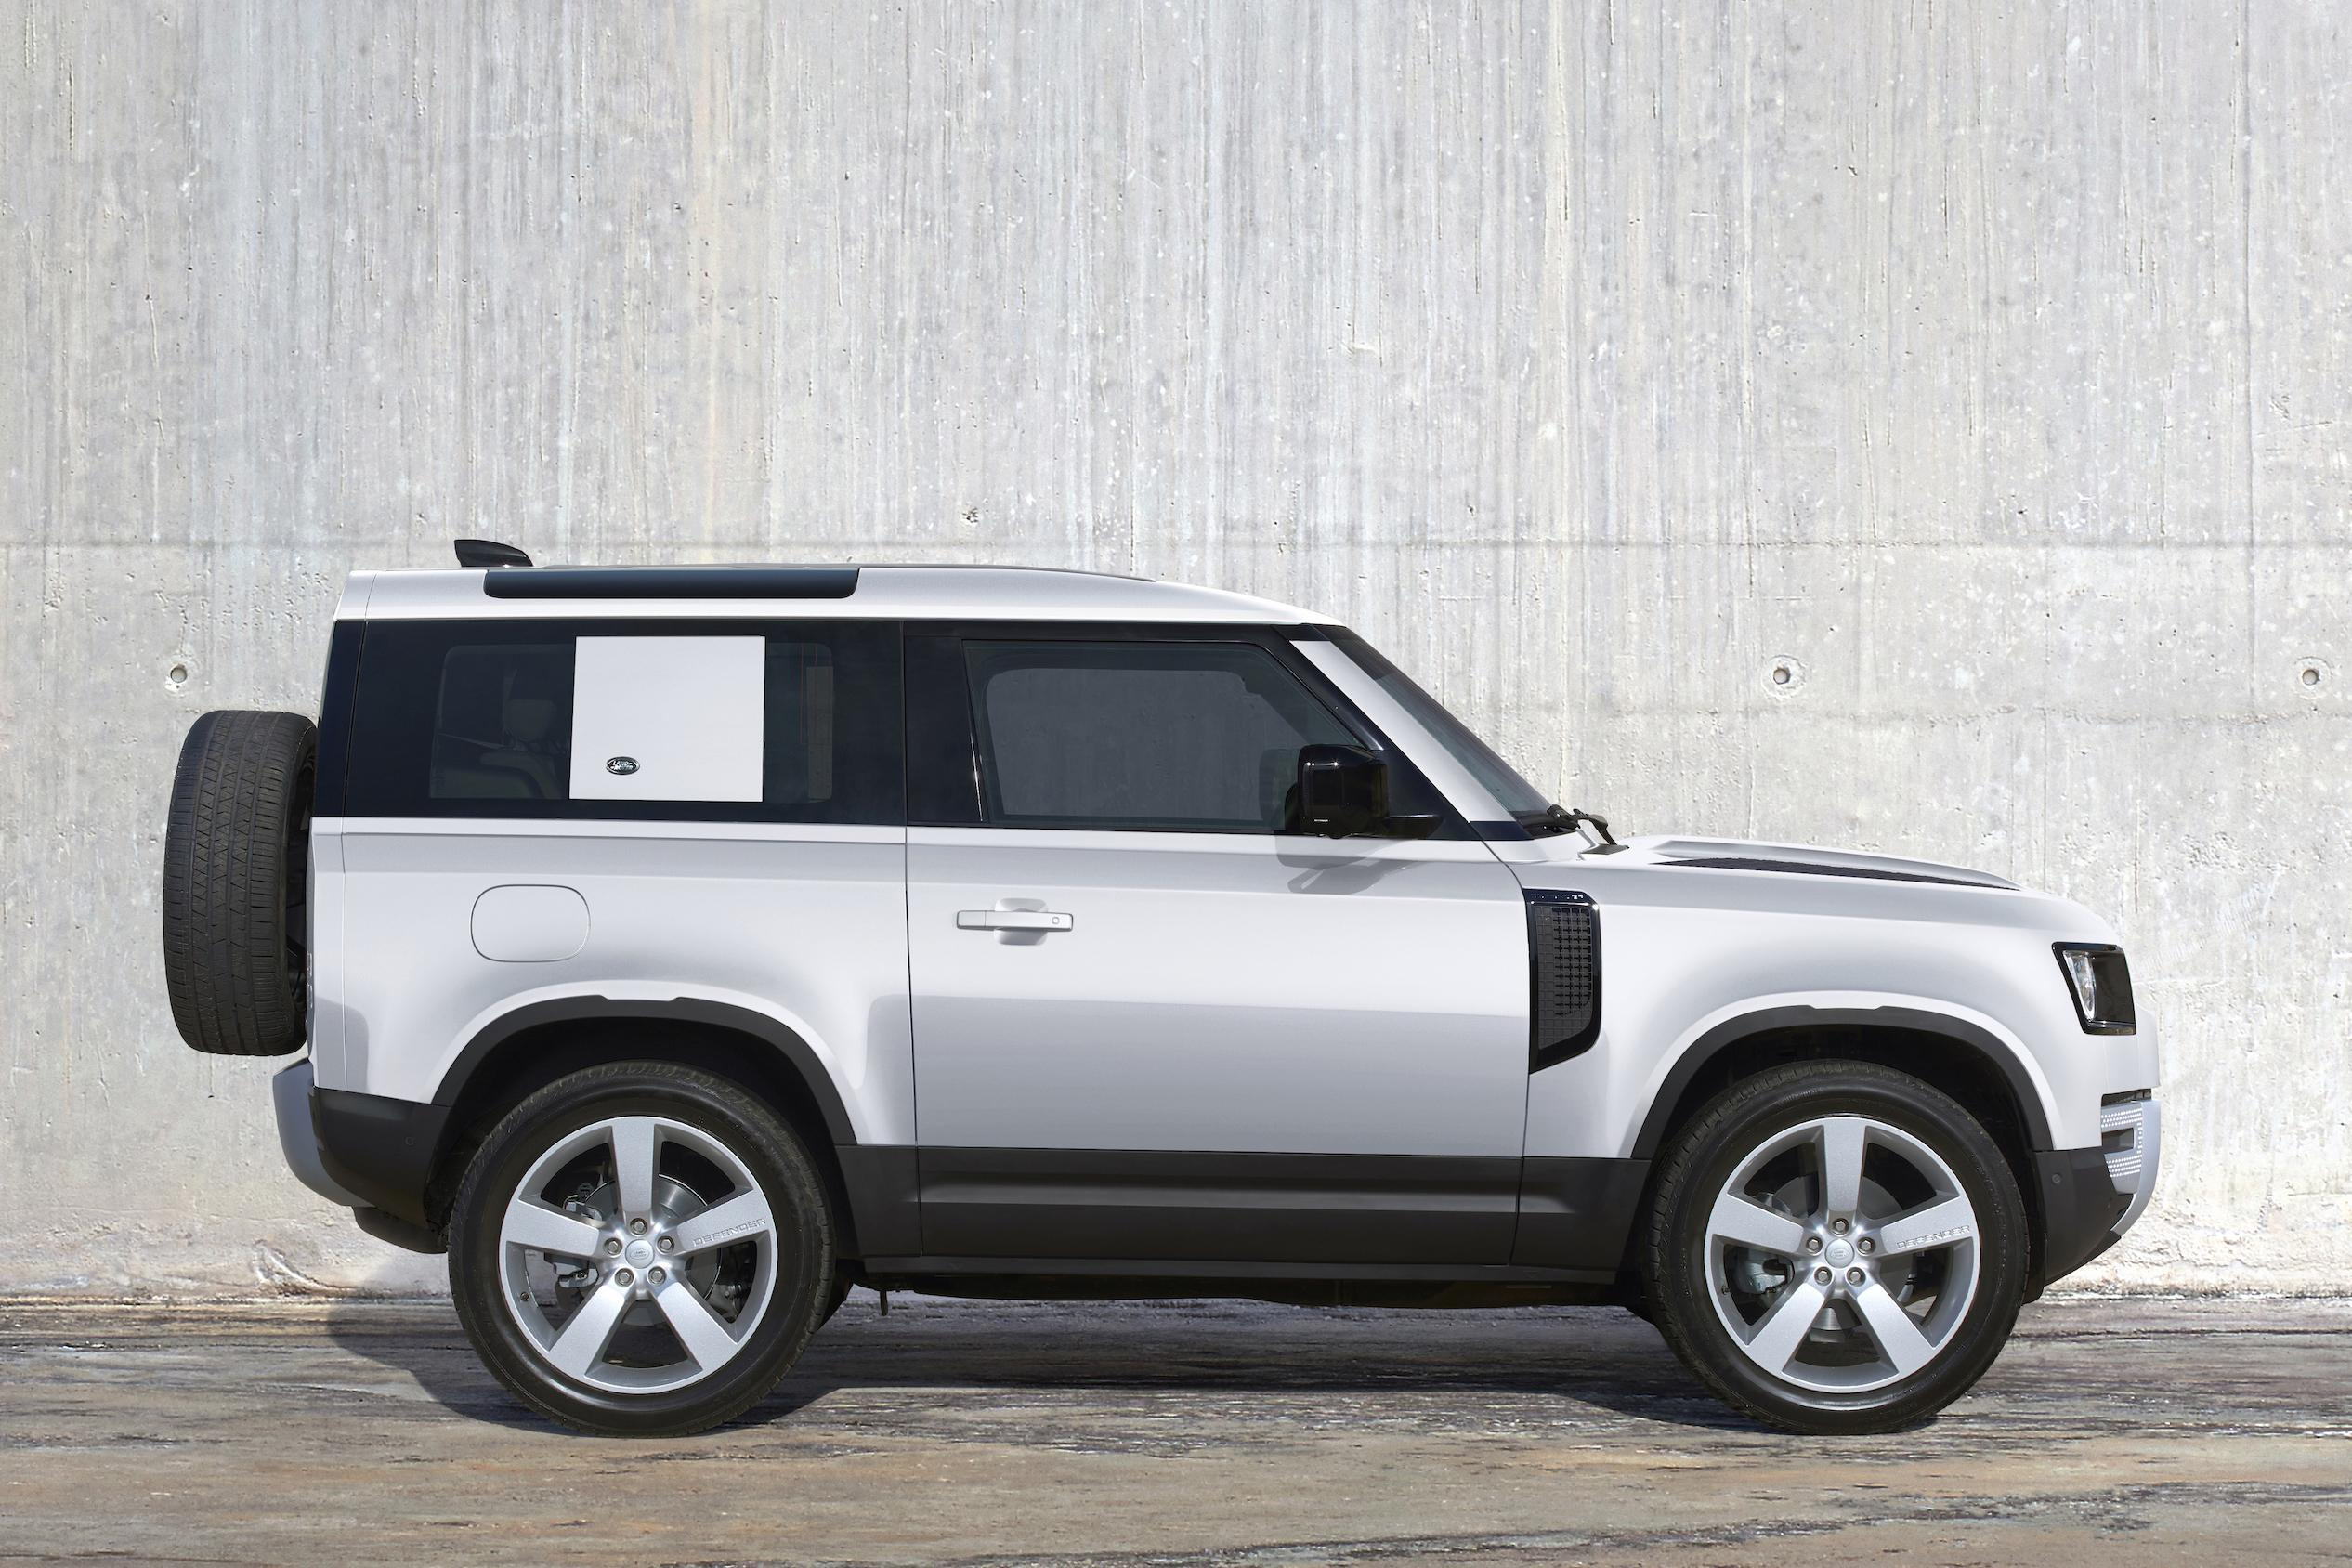 2021 Land Rover Defender 90 pricing and specs | CarExpert